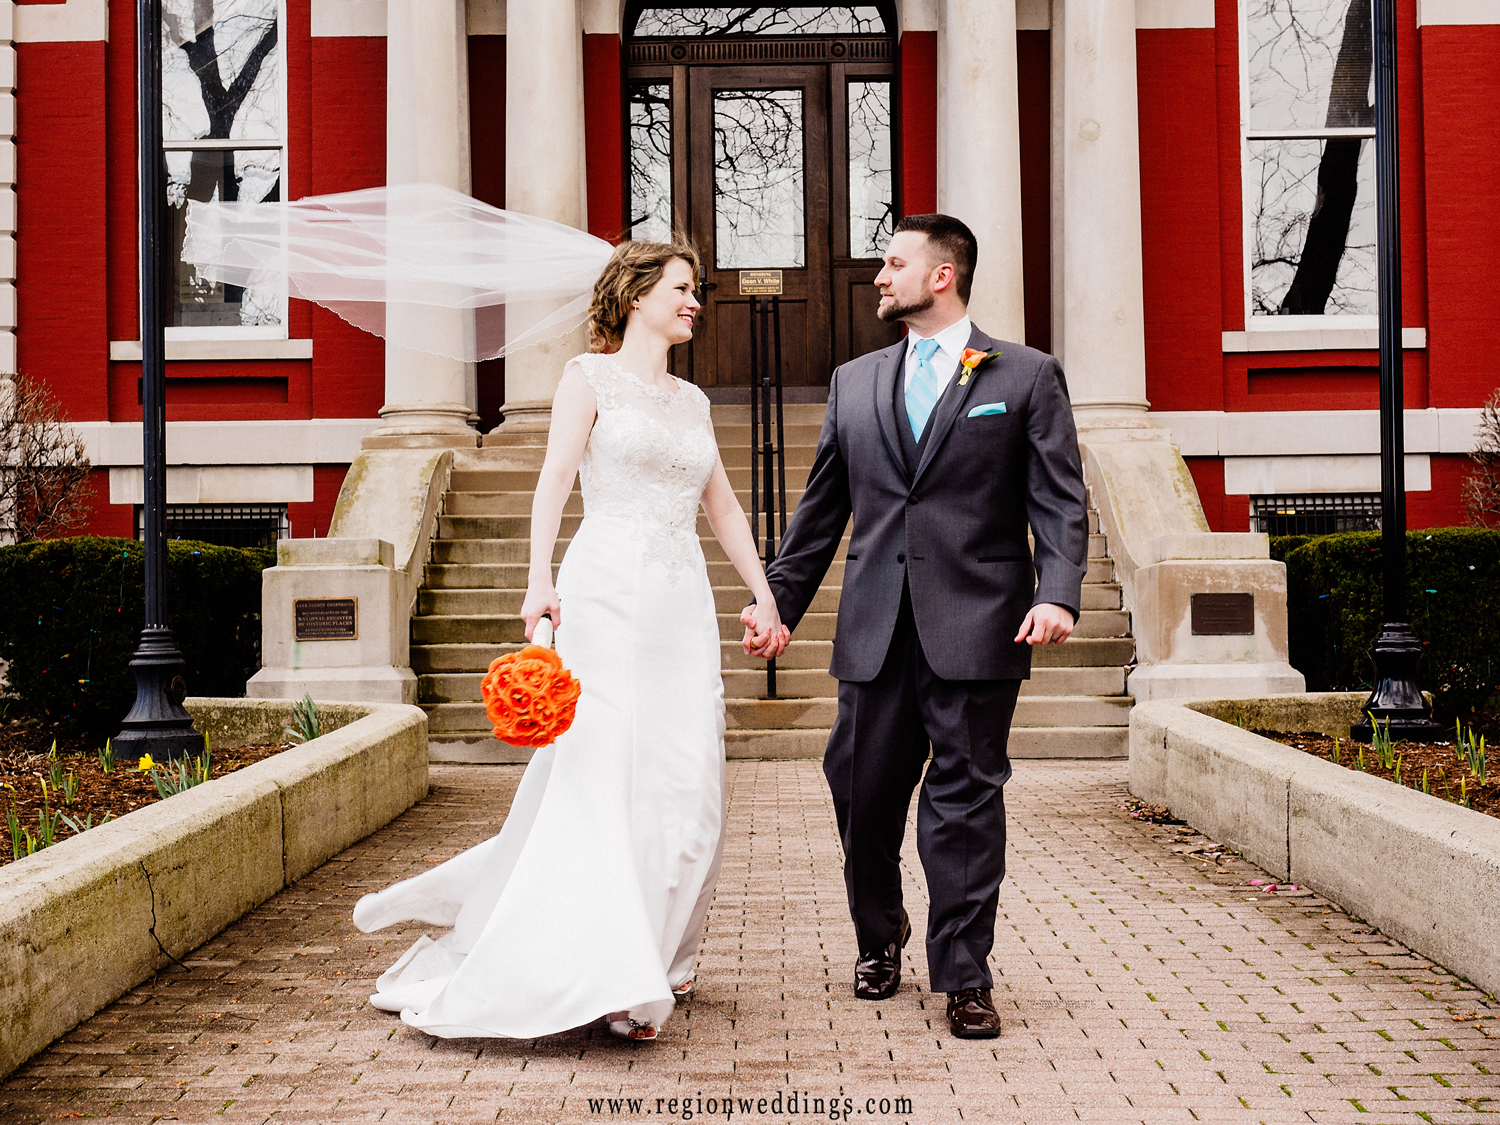 The bride's veil flies in the wind as the newlyweds take a stroll in downtown Crown Point.